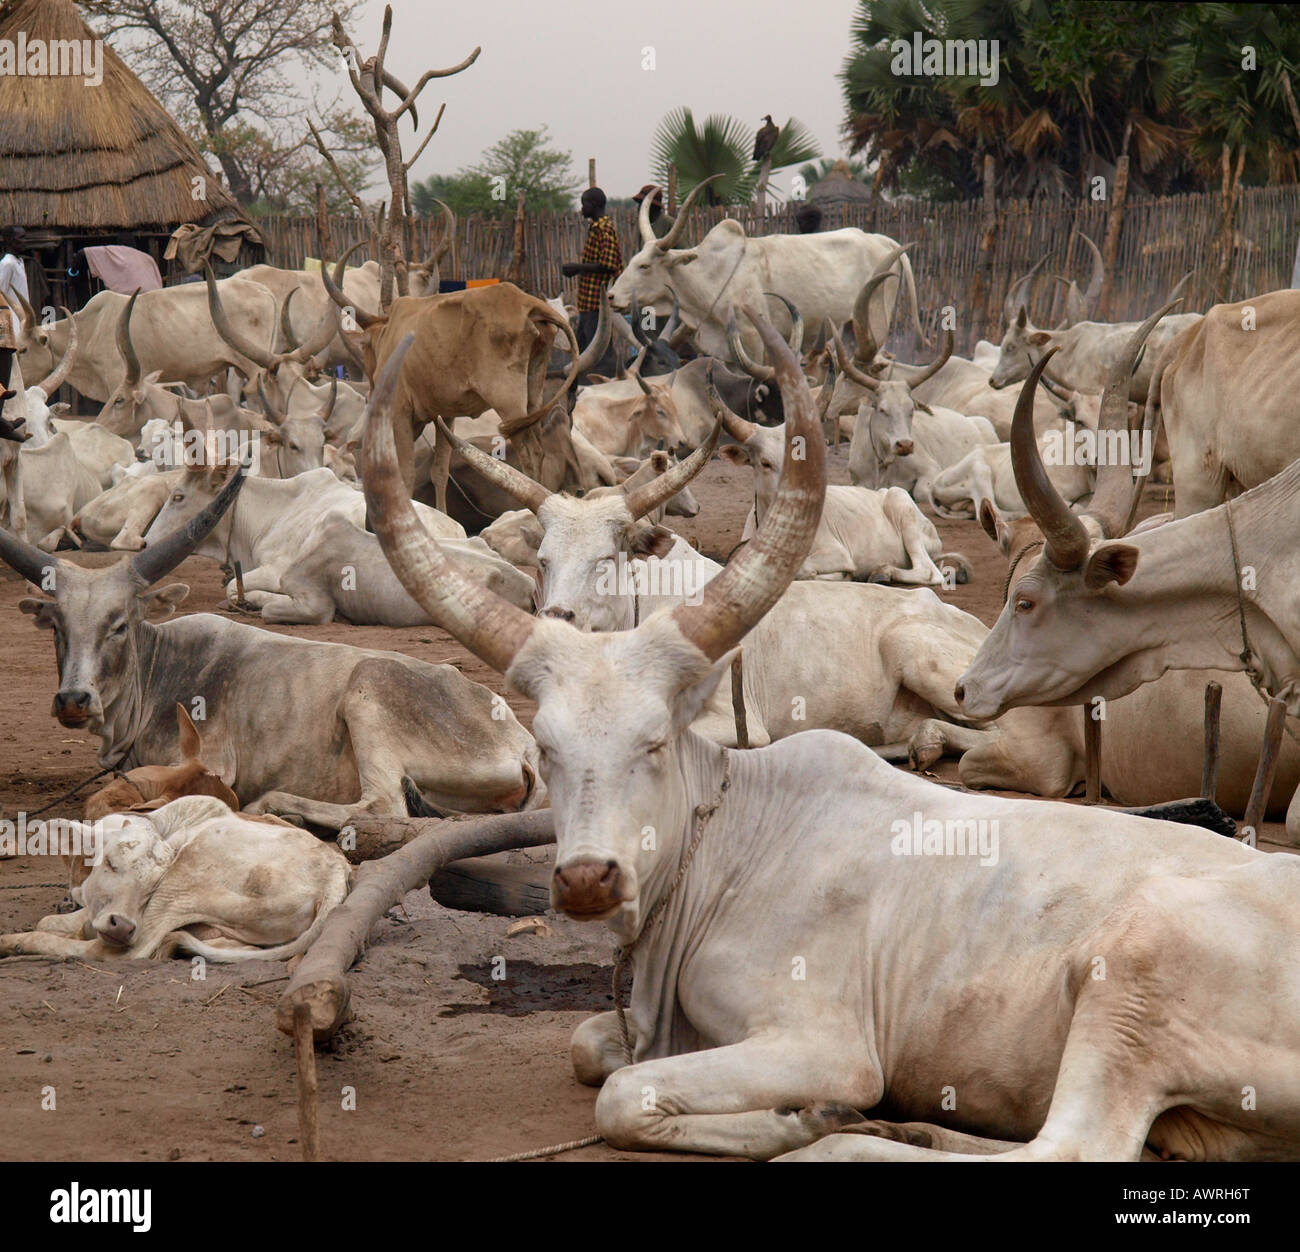 Cattle herd in South Sudan - Stock Image